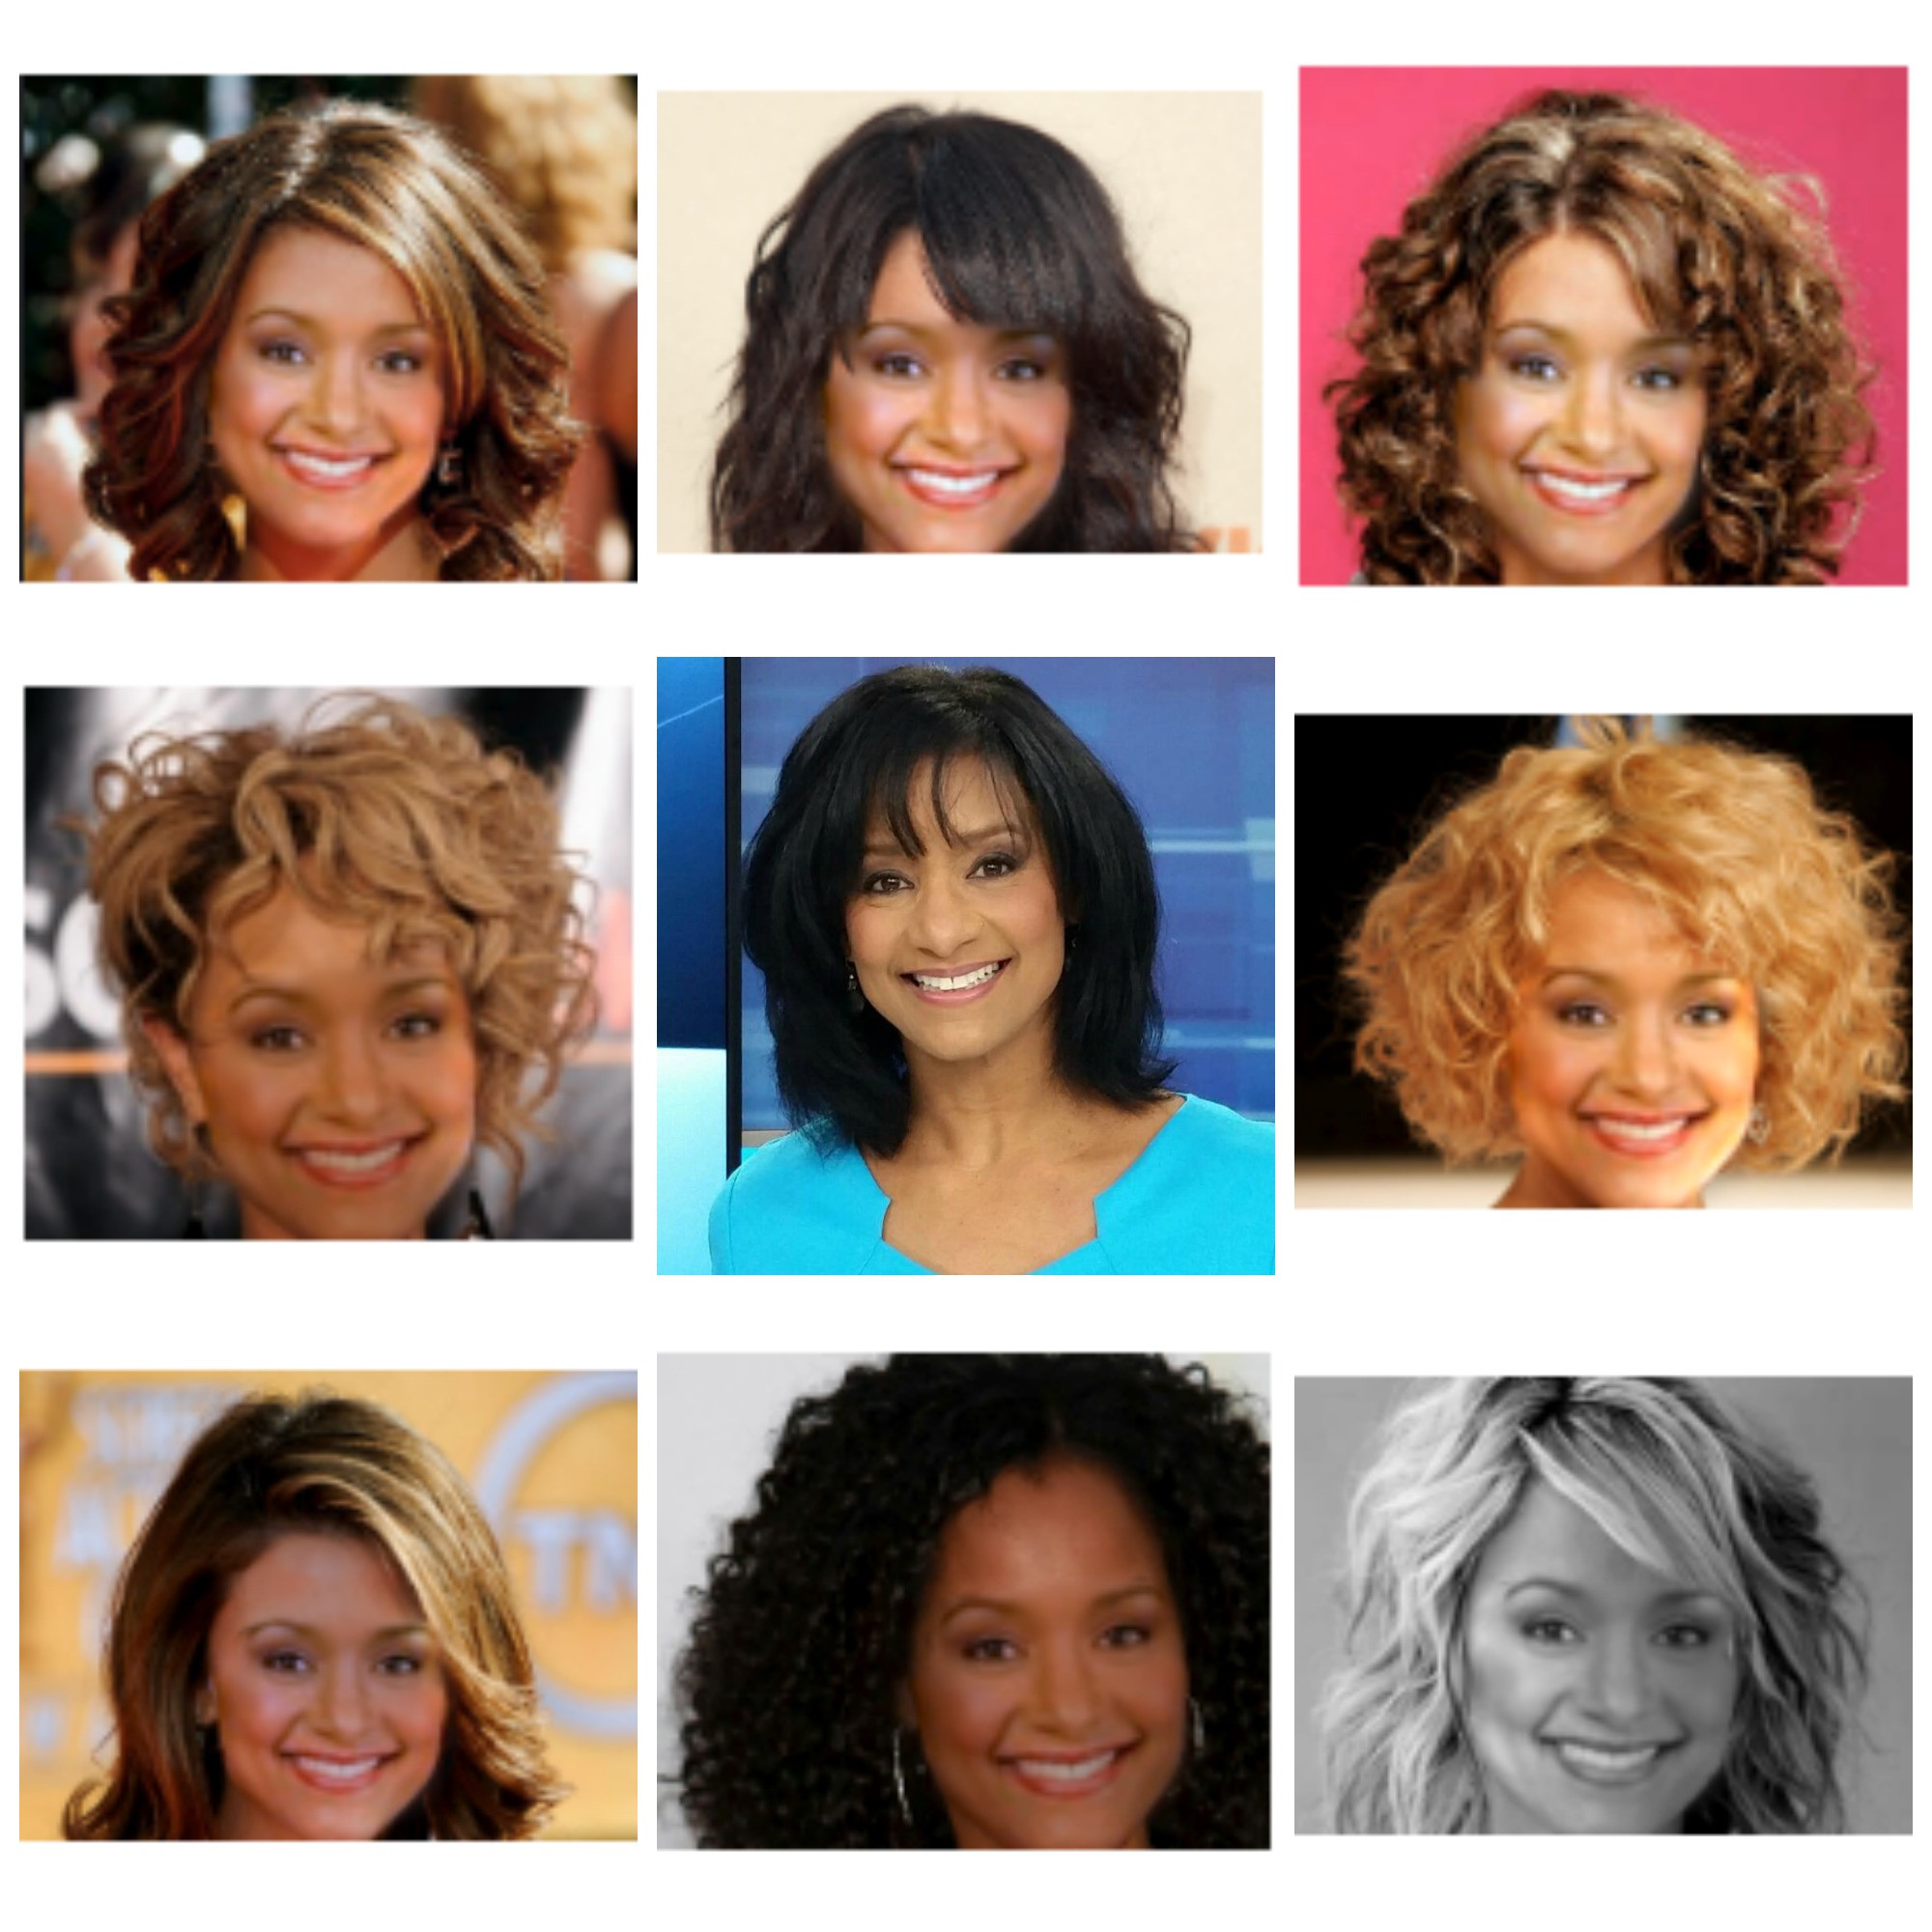 see yourself in different hairstyles - Hairstyles By Unixcode